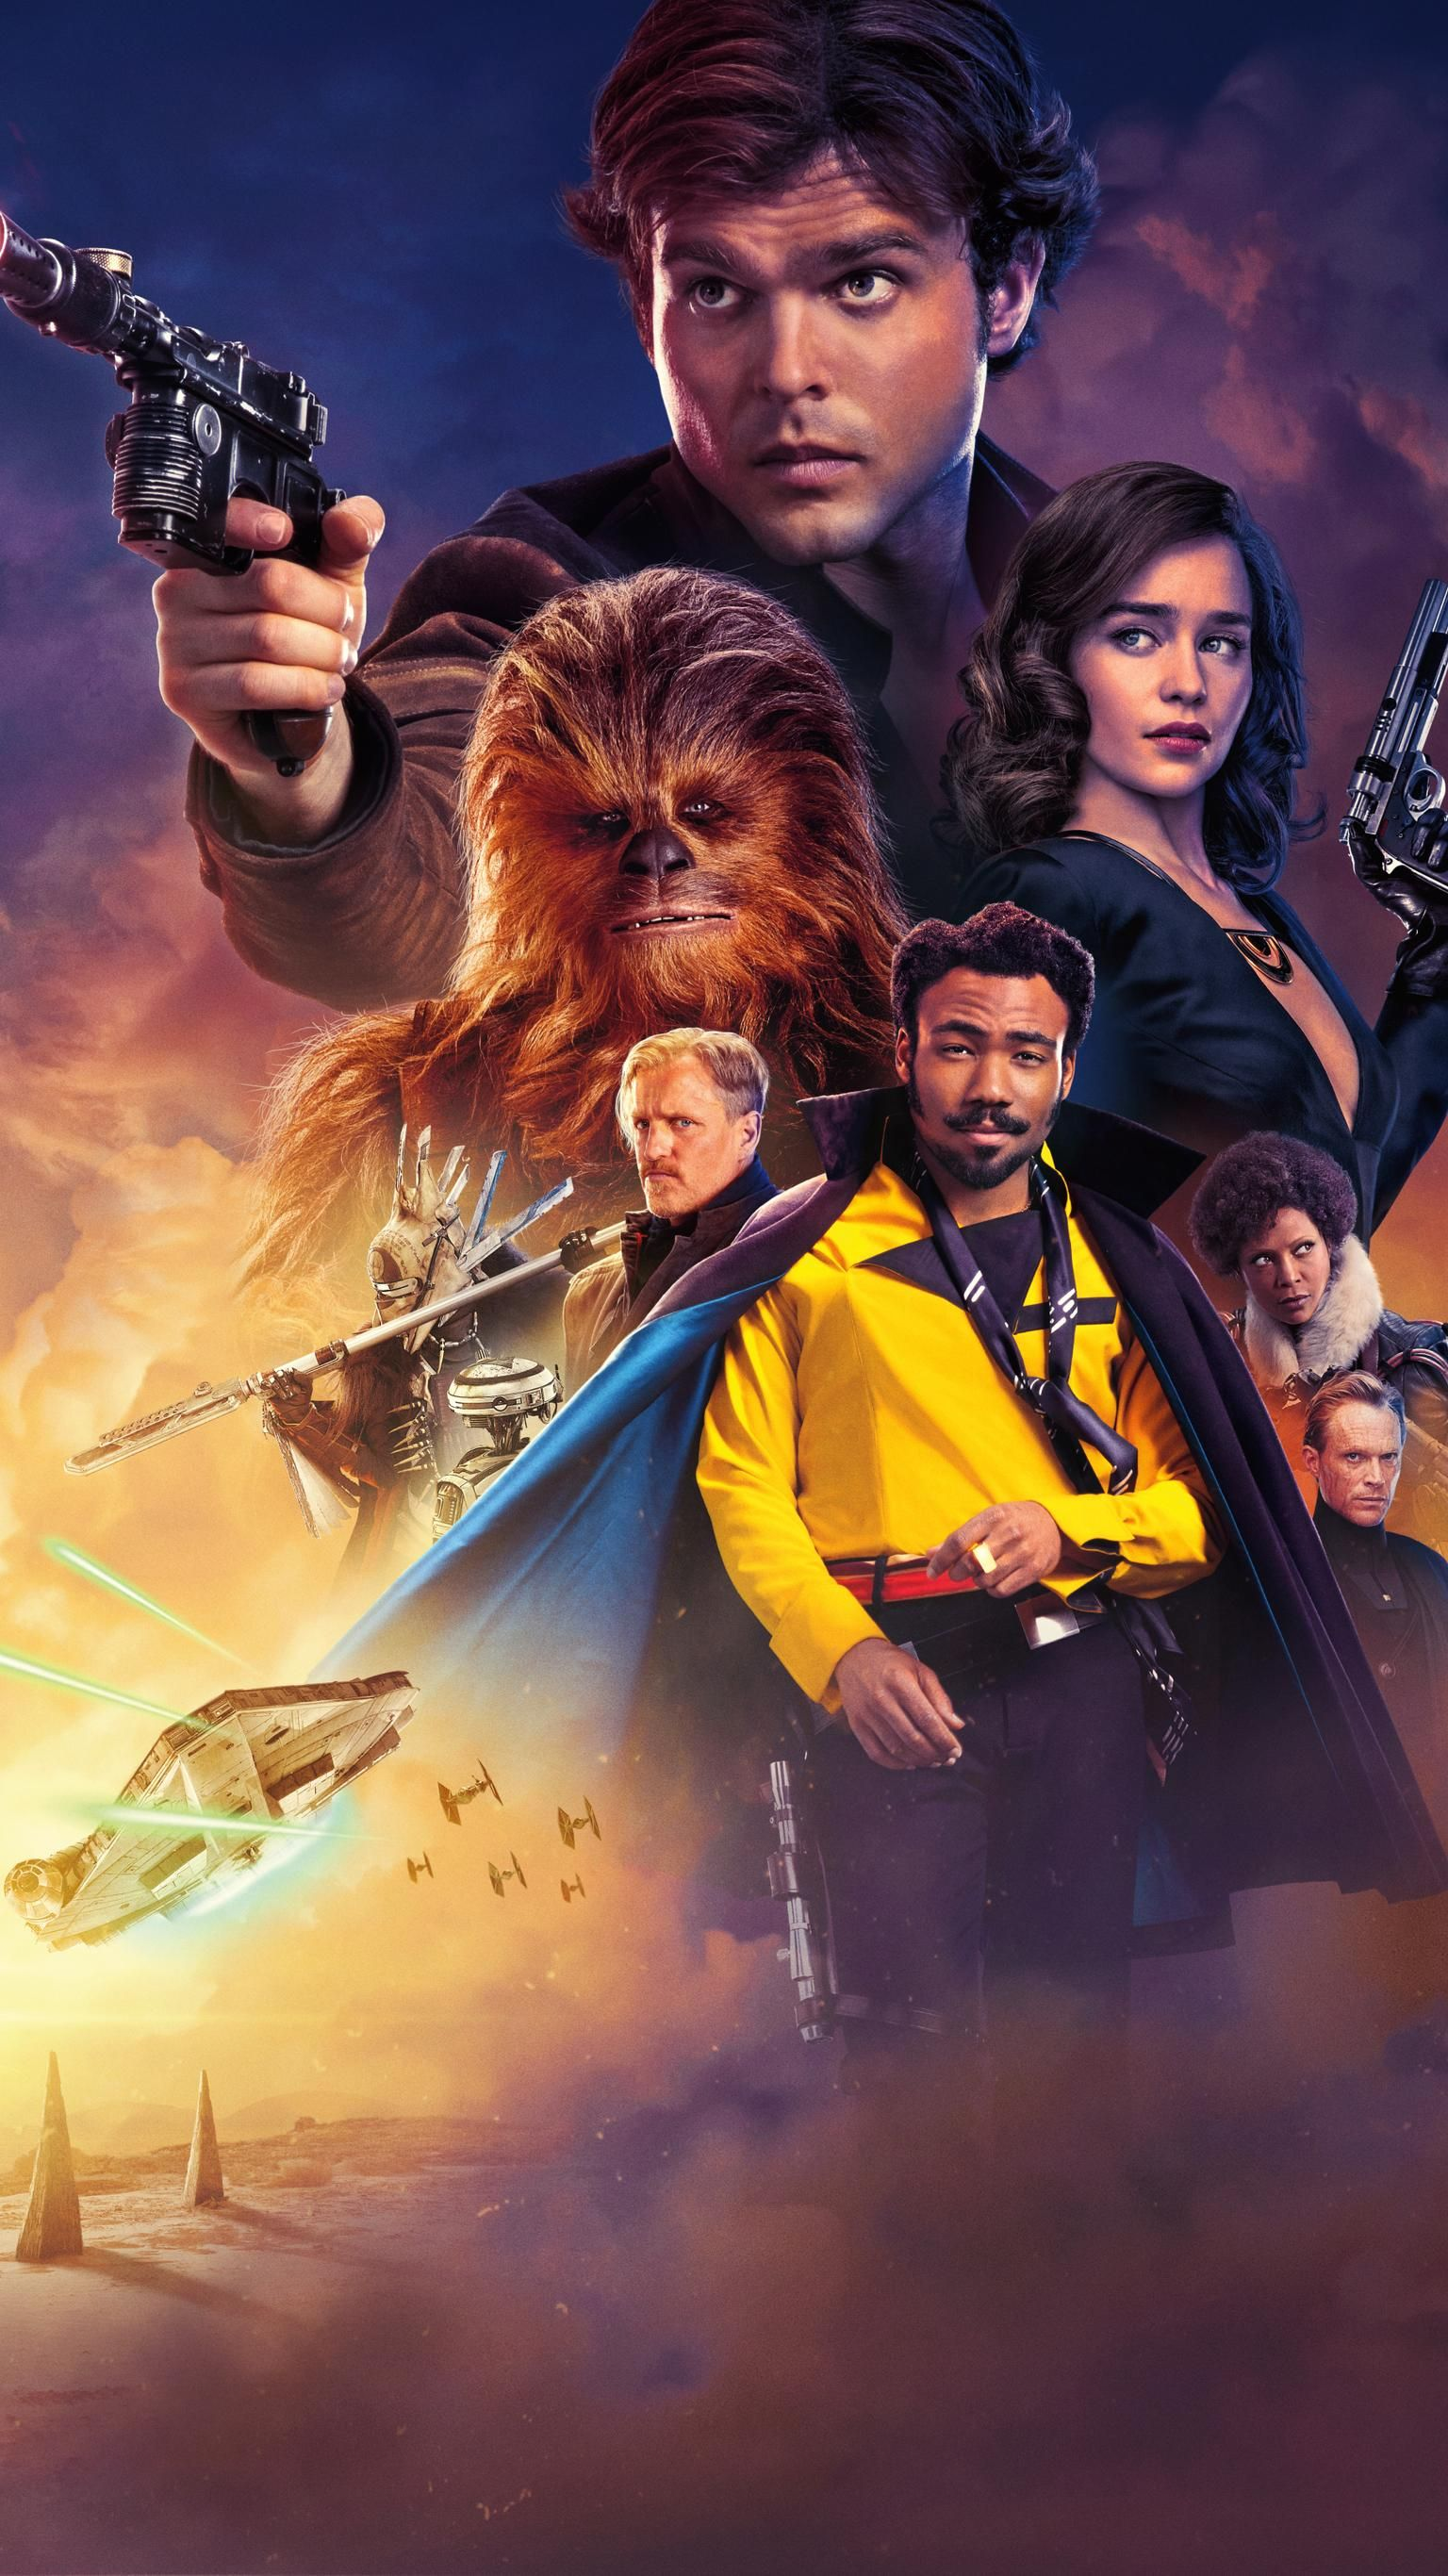 Solo A Star Wars Story 2018 Phone Wallpaper Moviemania Free Movies Online War Stories Star Wars